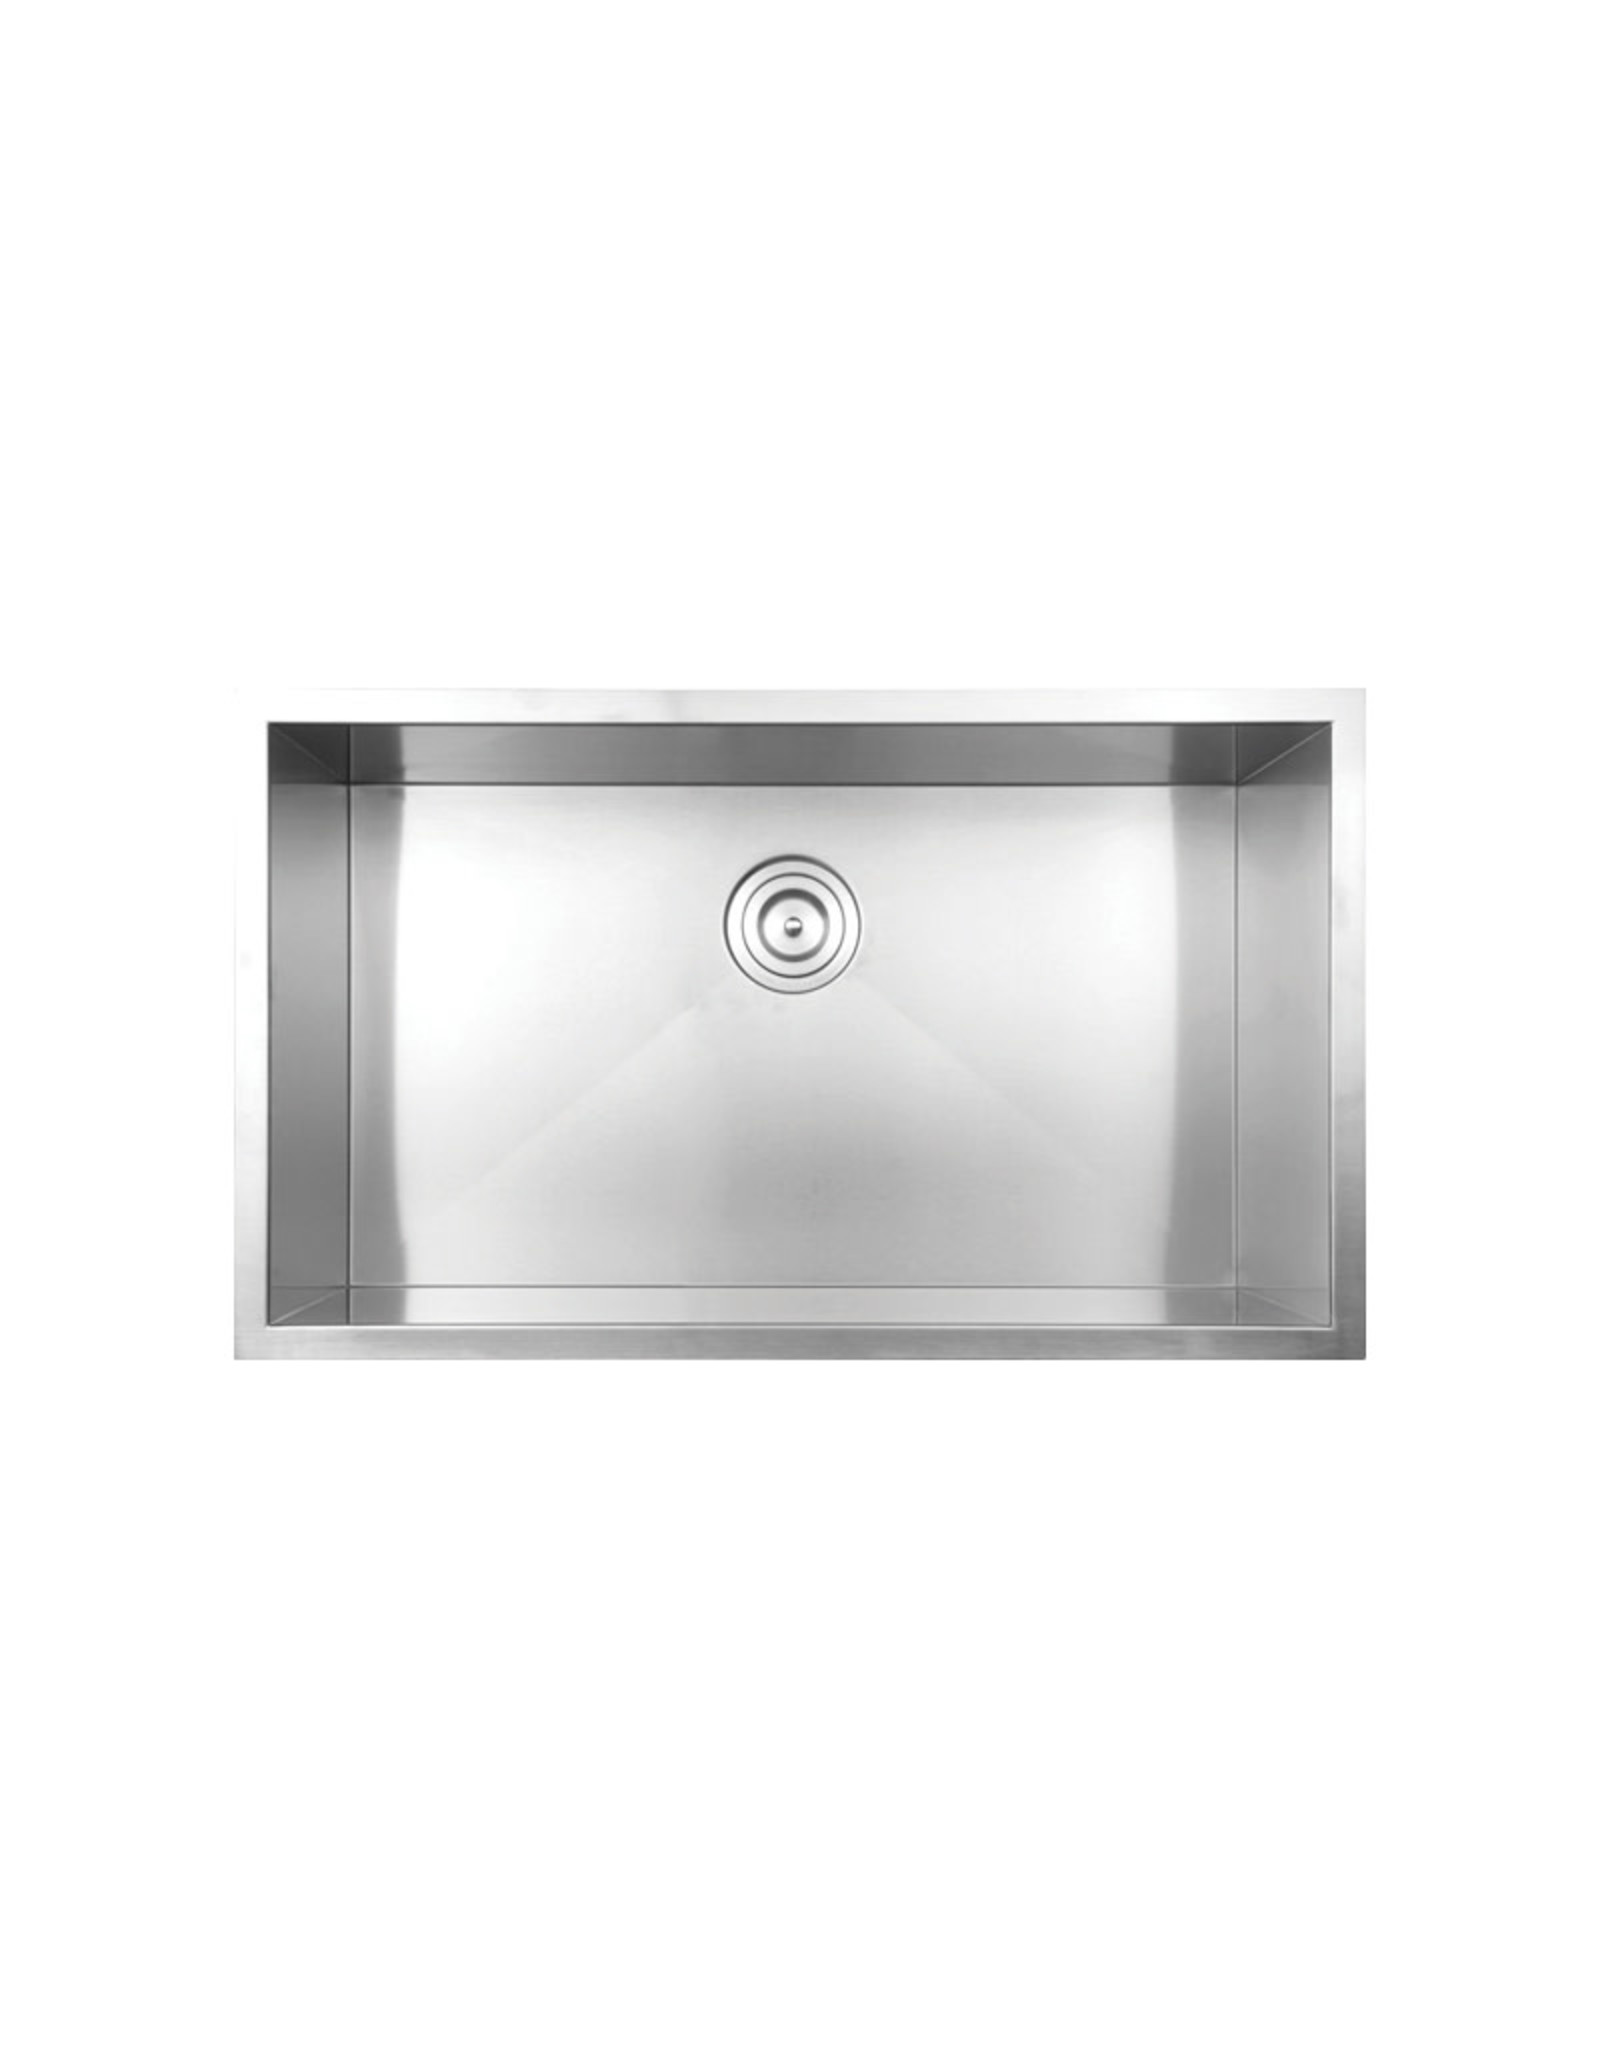 "Vogt Wolfsberg 16Z Undermount Kitchen Sink 32"" x 18"" x 10"""